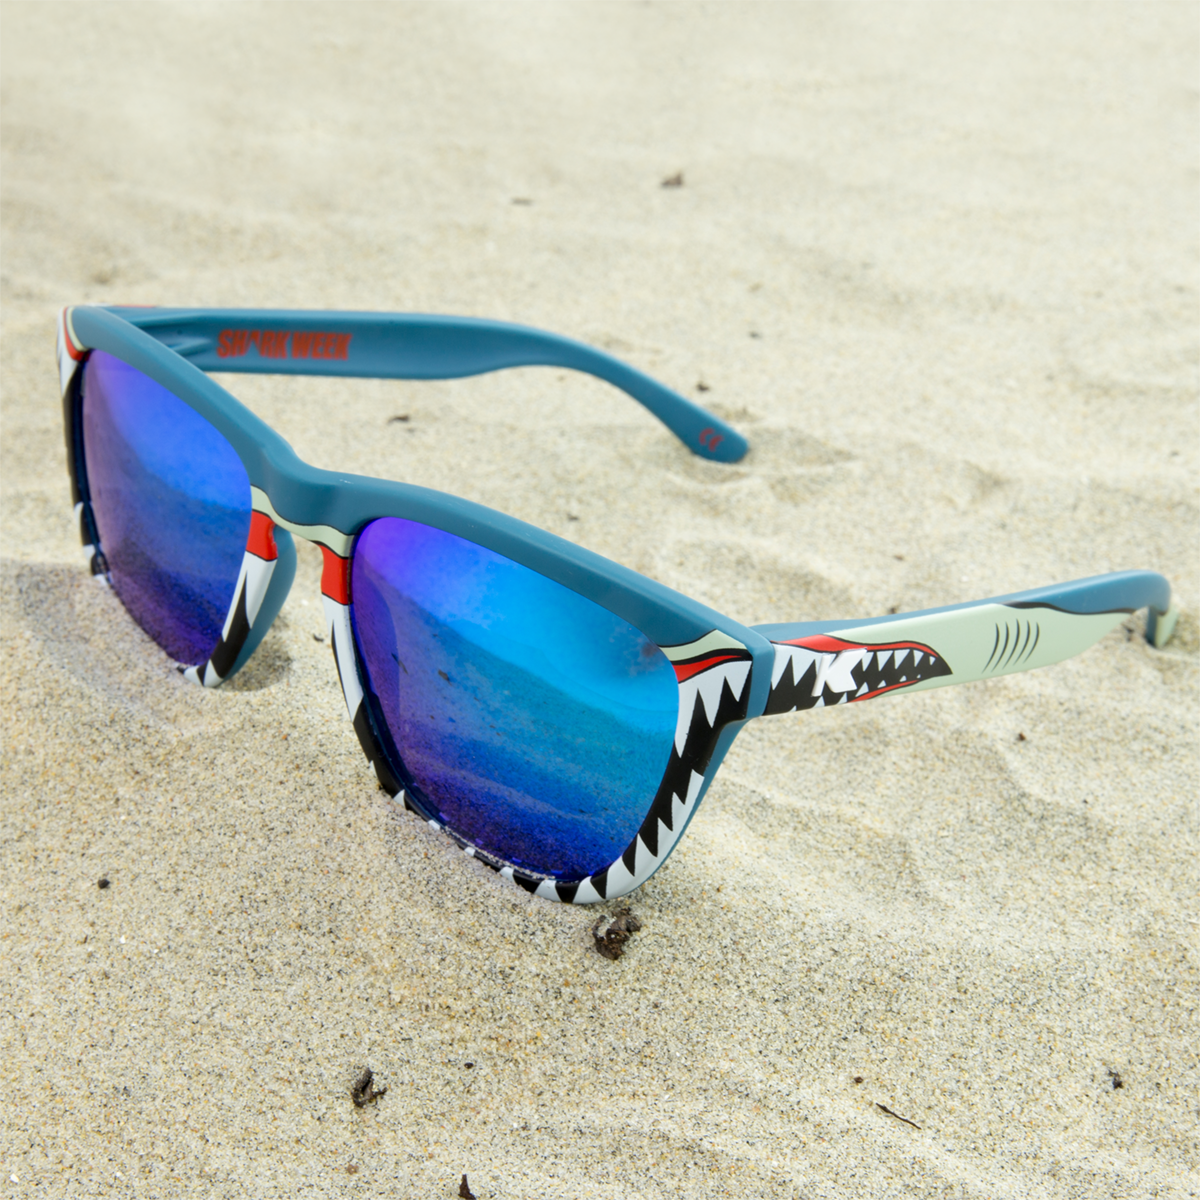 The Shark Week II Premiums are available for $30 #sharkweek #discoverychannel #knockaround https://t.co/nDGnE7kIs8 https://t.co/xwuItIFNu3